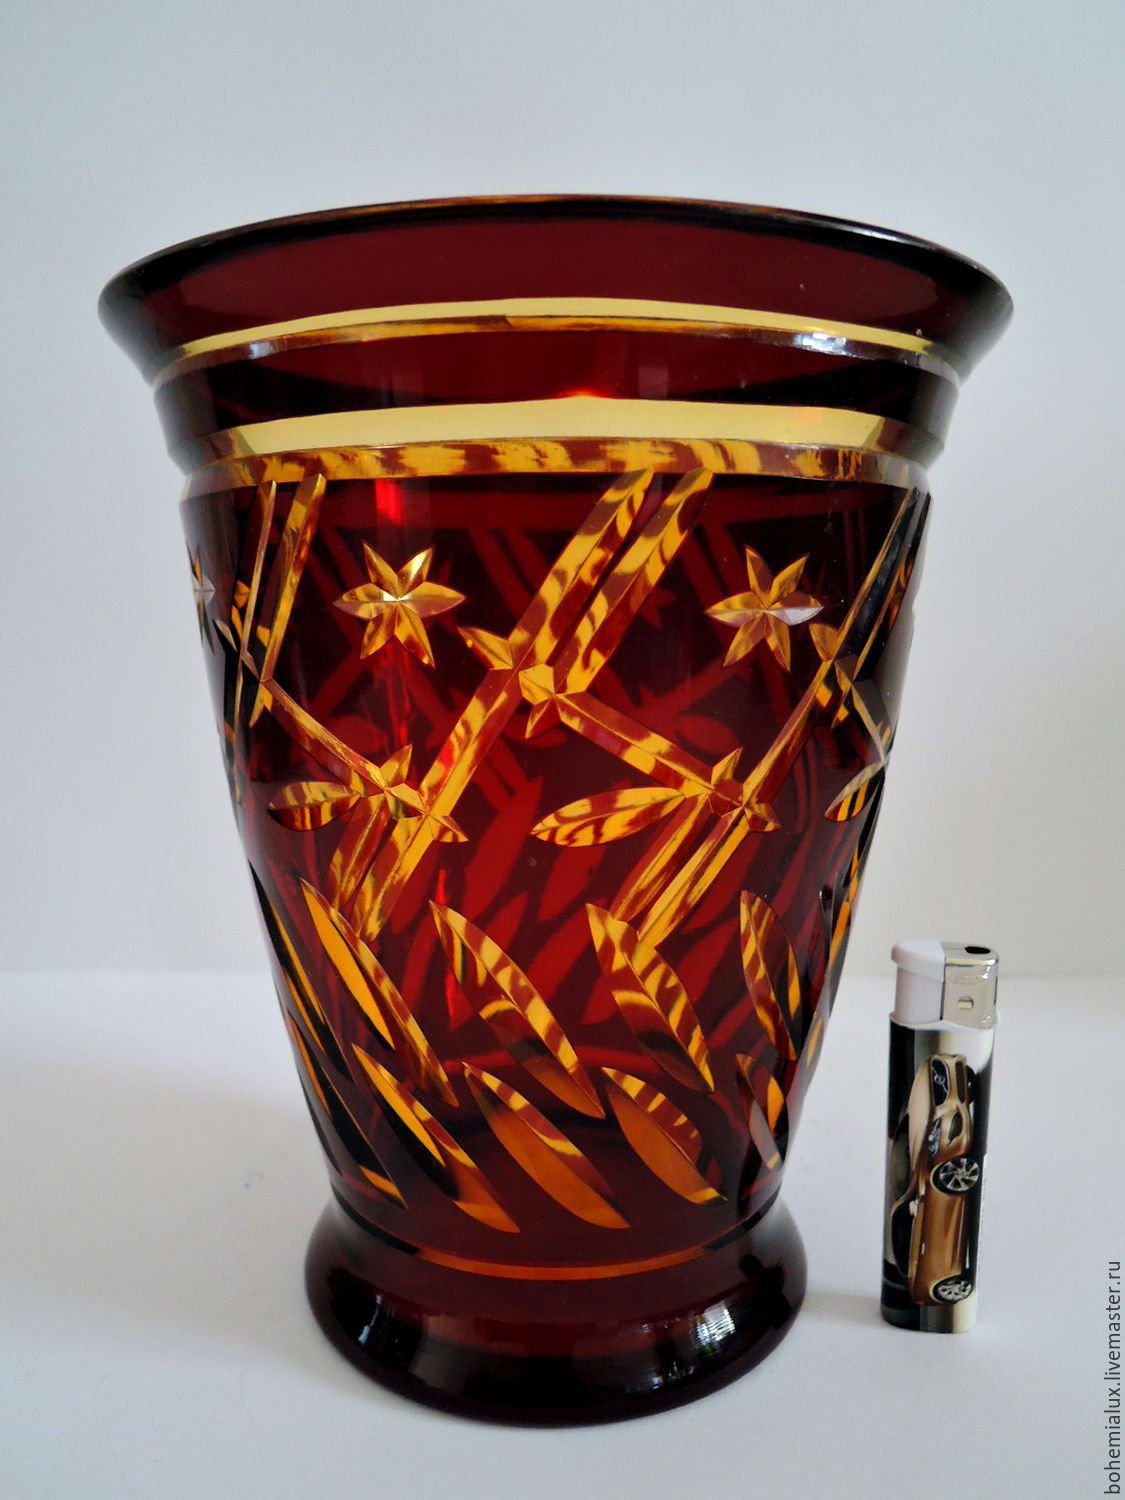 Red Bohemian Glass Vase Of Double Layer Glass Vase 1900 Hs Bohemia Hajda Art Deco Shop Throughout Double Layer Glass Vase 1900 Hs Bohemia Hajda Art Deco